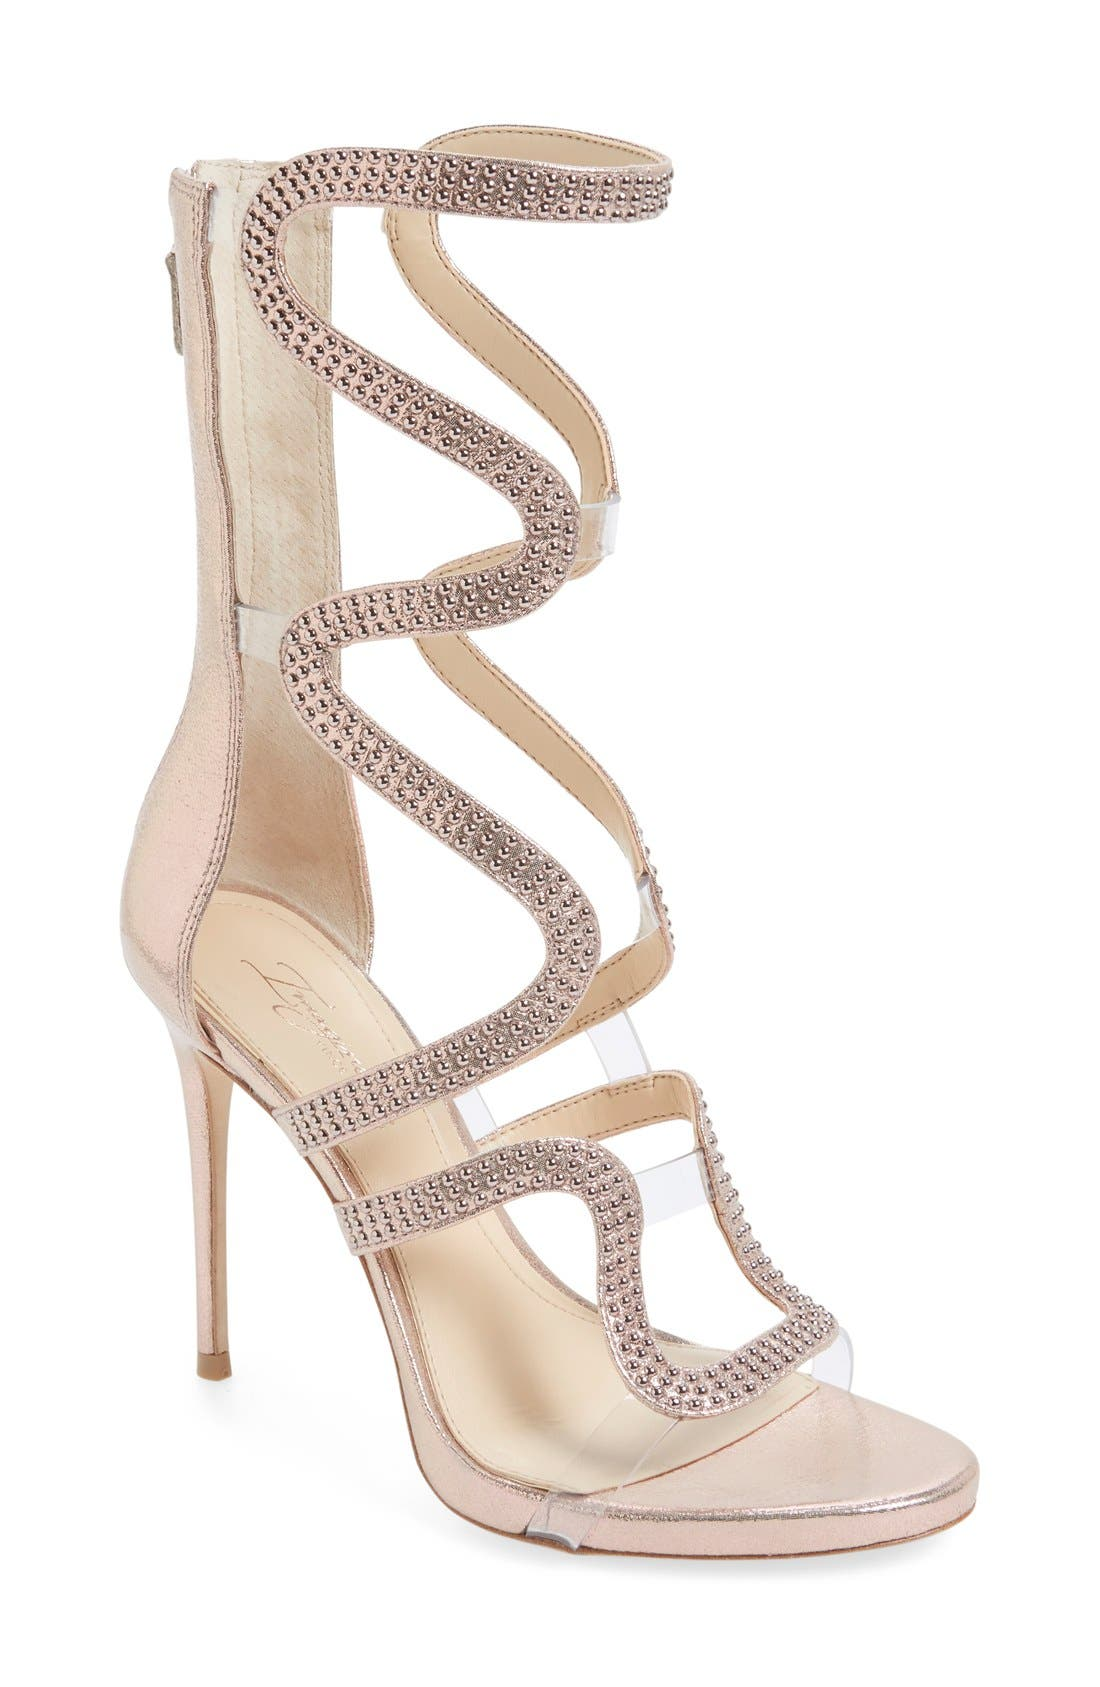 Alternate Image 1 Selected - Imagine Vince Camuto 'Dash' Cage Sandal (Women)